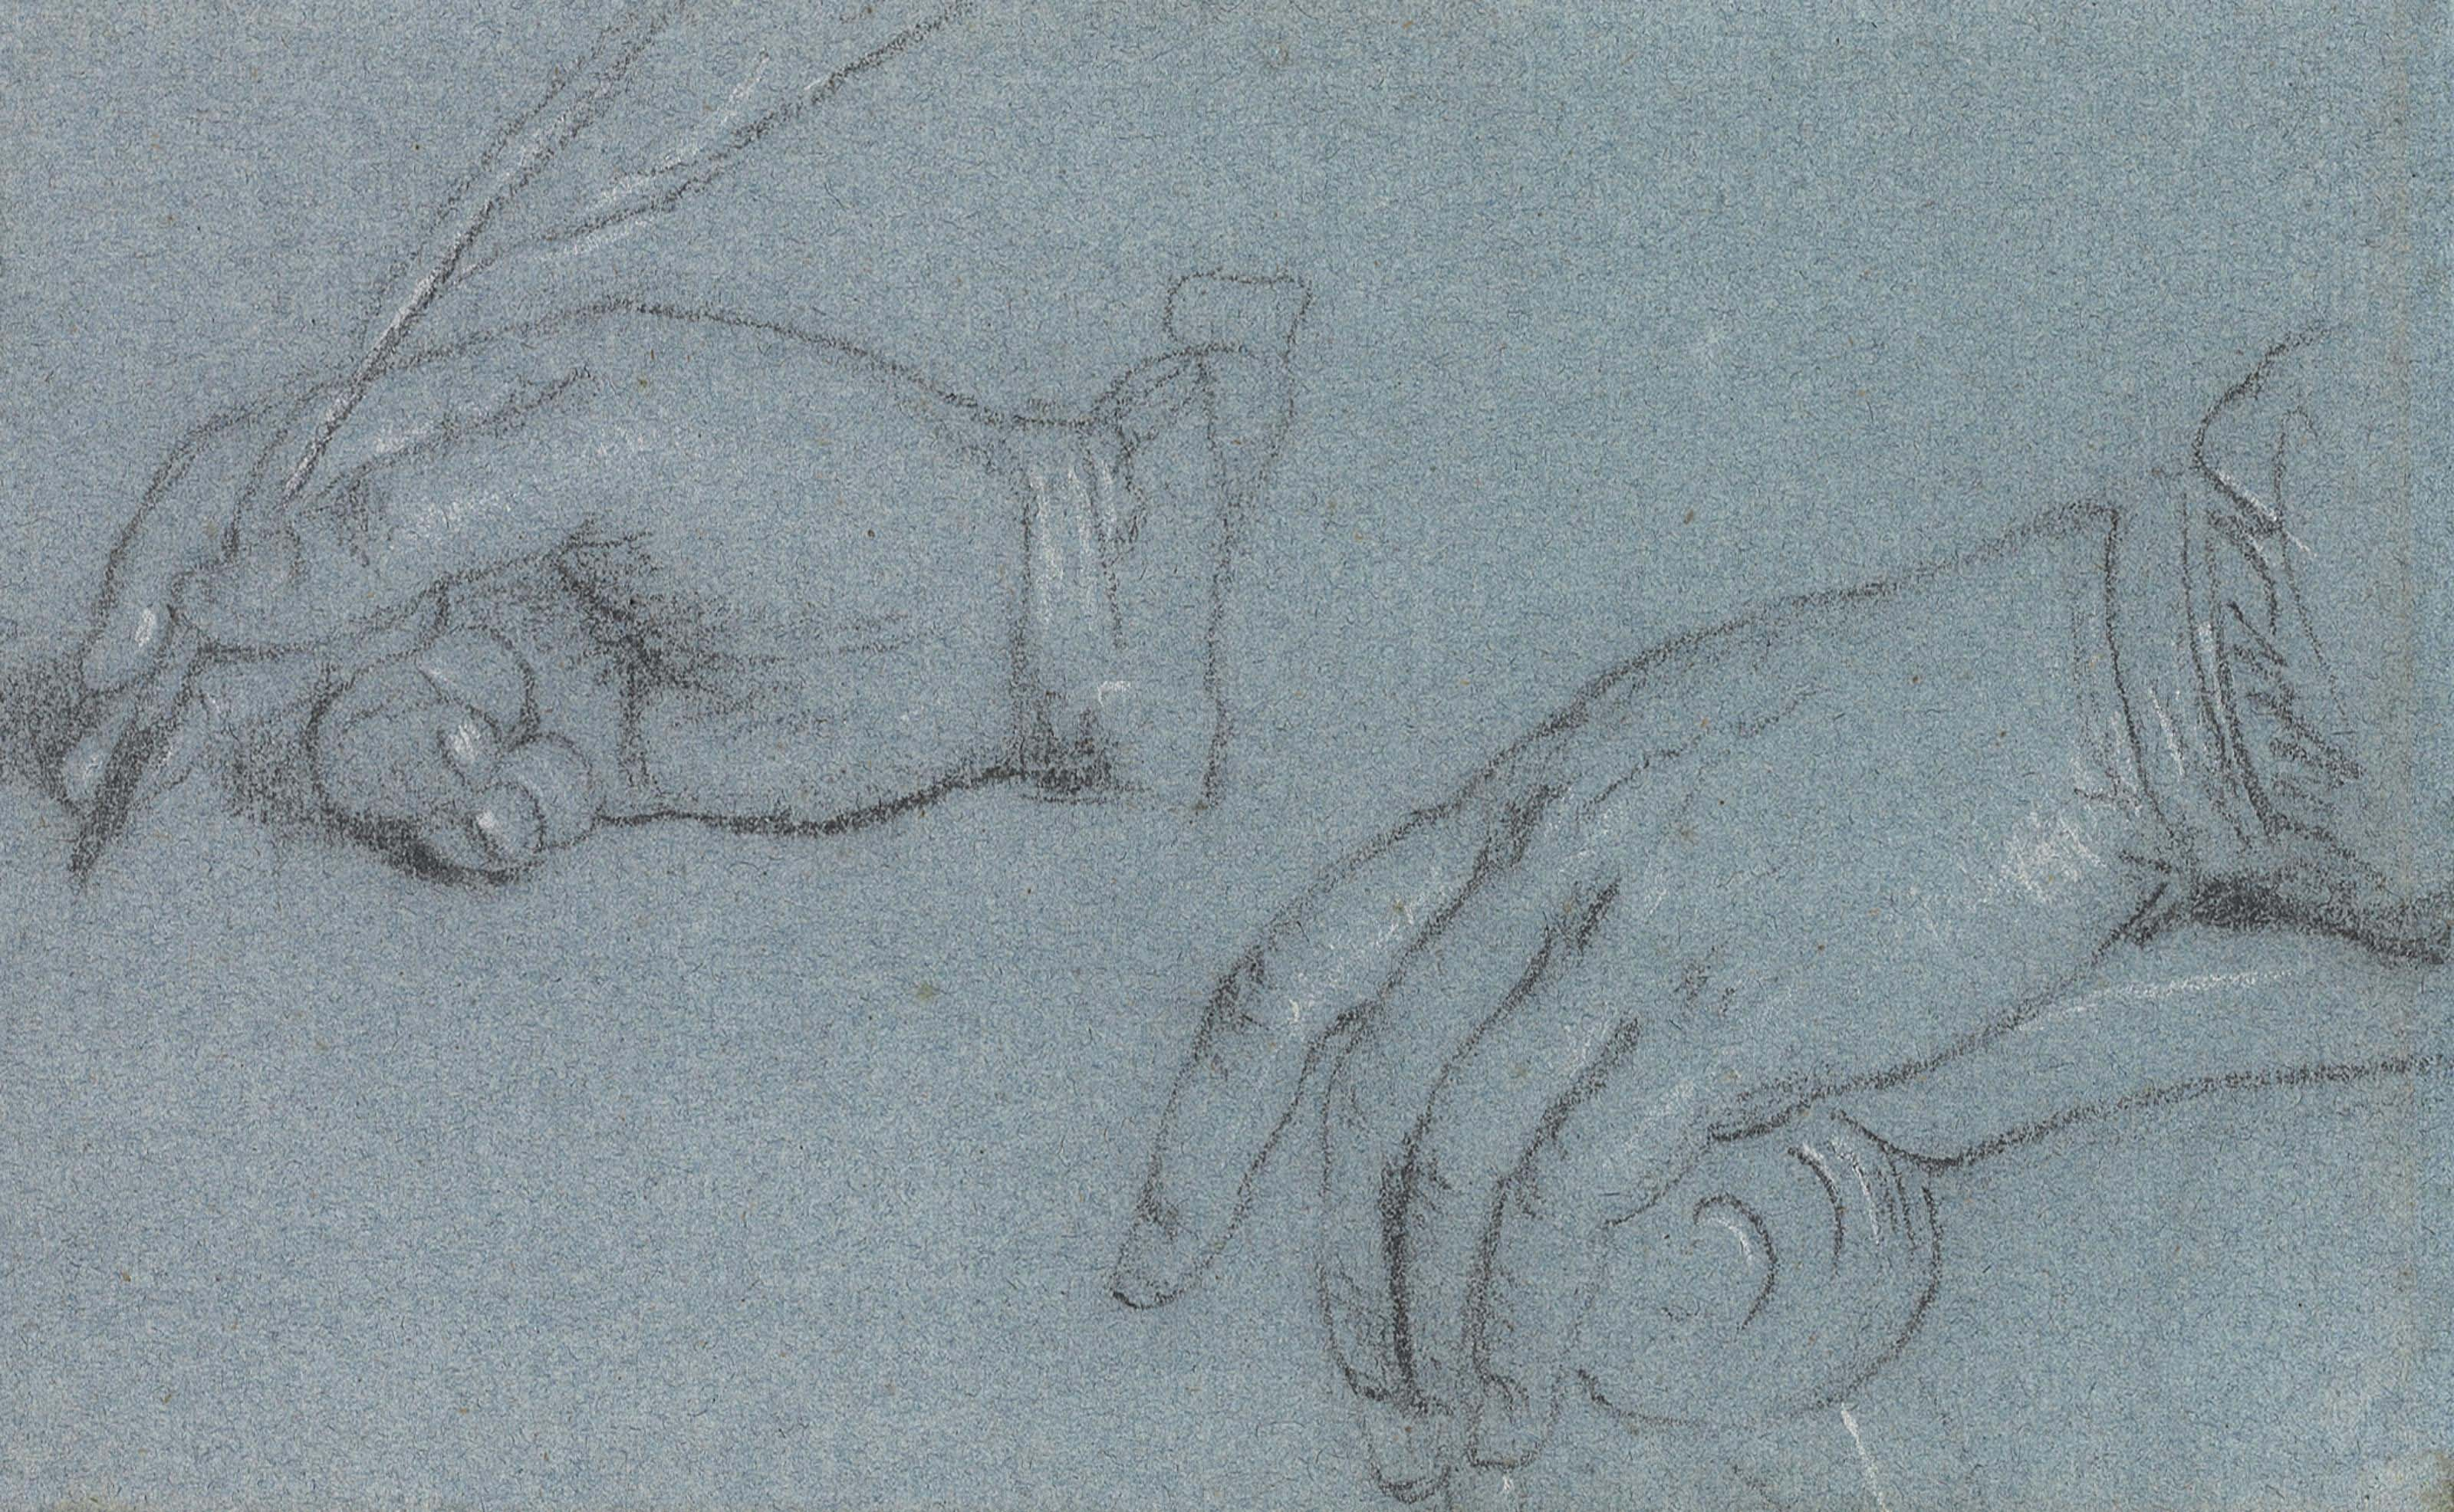 Study of hands, one holding a quill pen